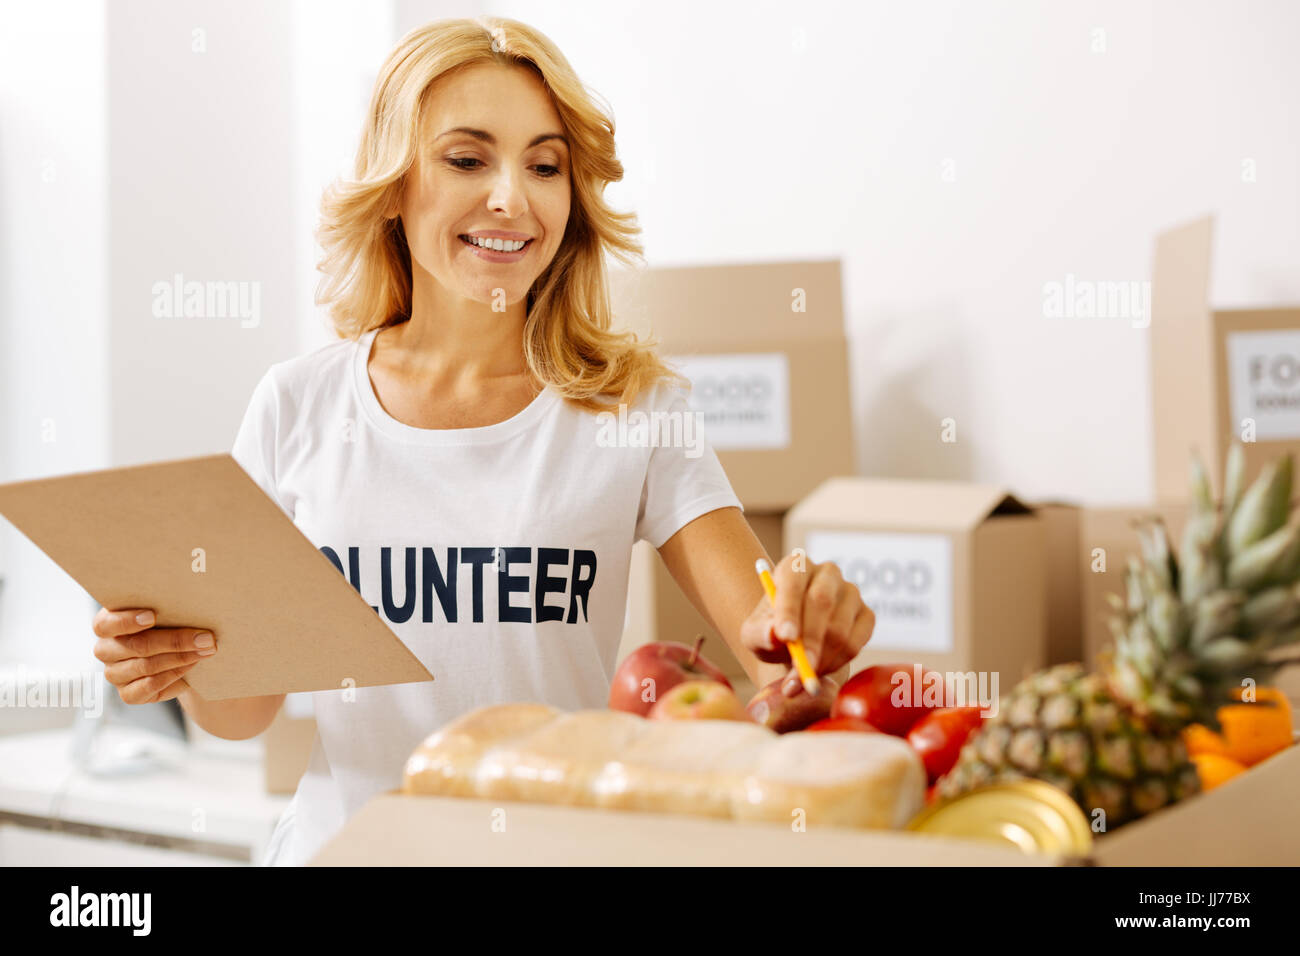 Diligent stunning woman keeping supplies in check Stock Photo